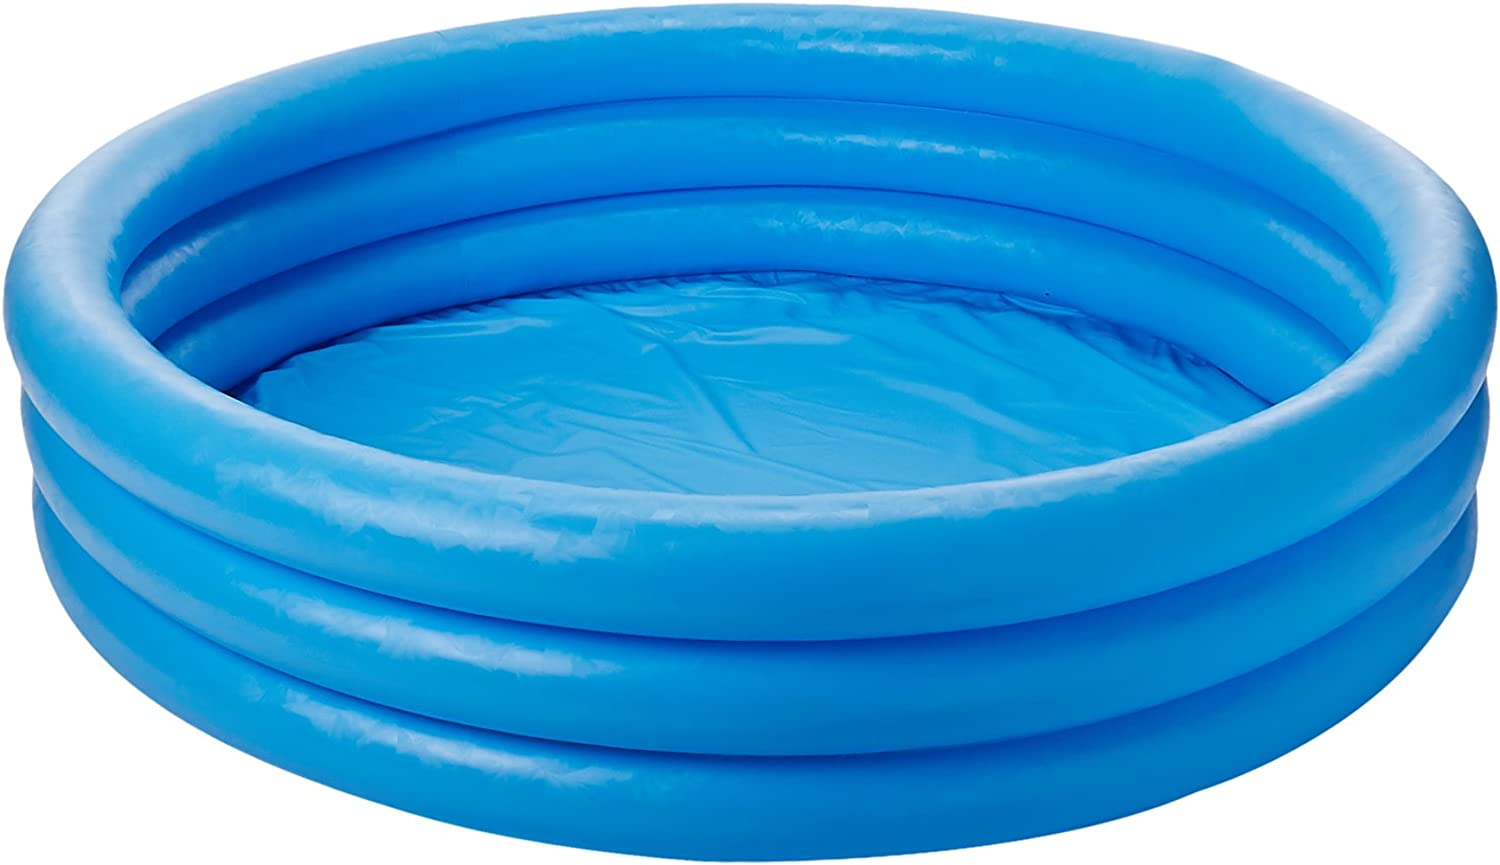 Intex Crystal Blue Inflatable Pool 45 X 10 Kiddie Pools Amazon Canada